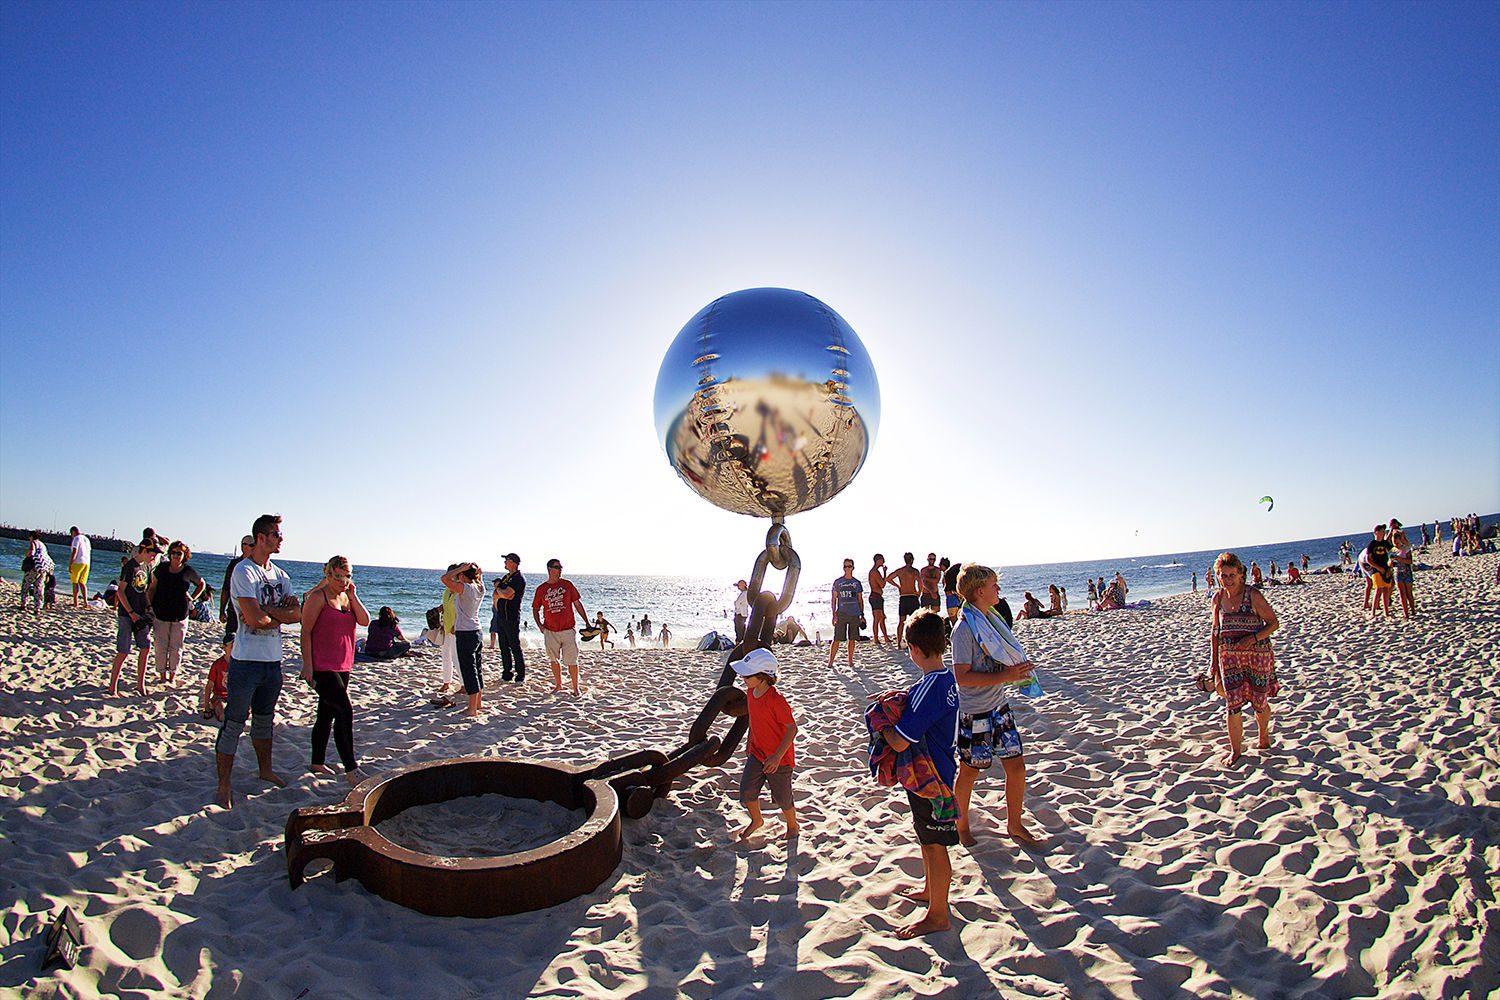 NortonFlavel_luckycountry_Cottesloe15_JSeng_HI